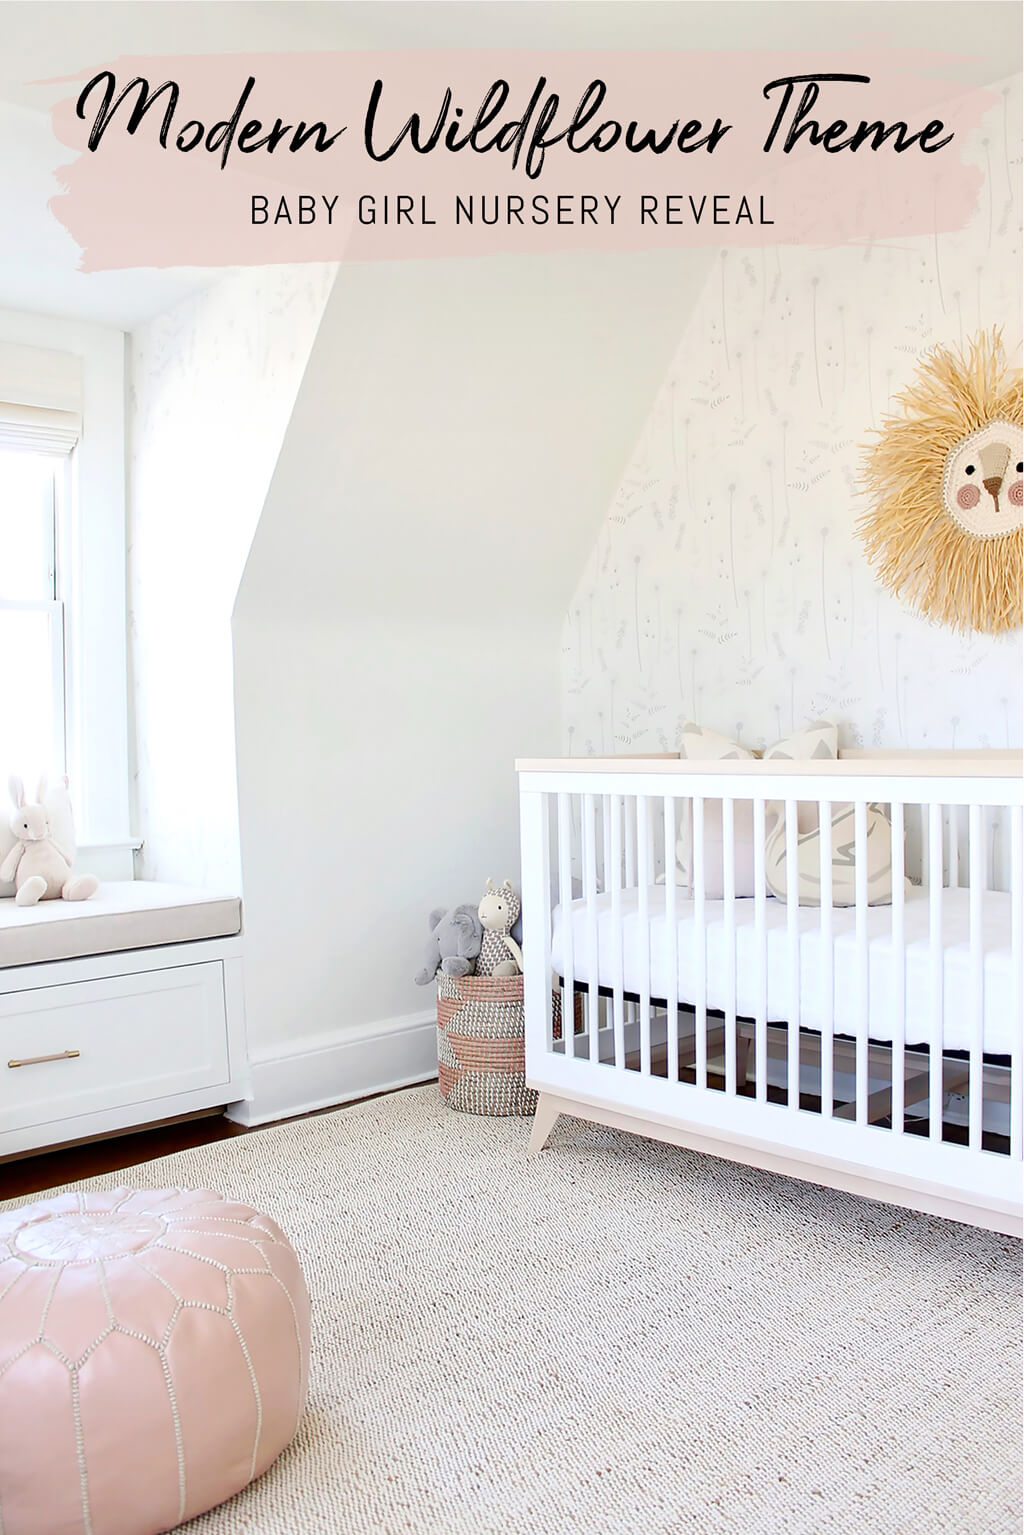 Modern all white wildflower theme baby girl nursery with chic brass and blush pink interior decor